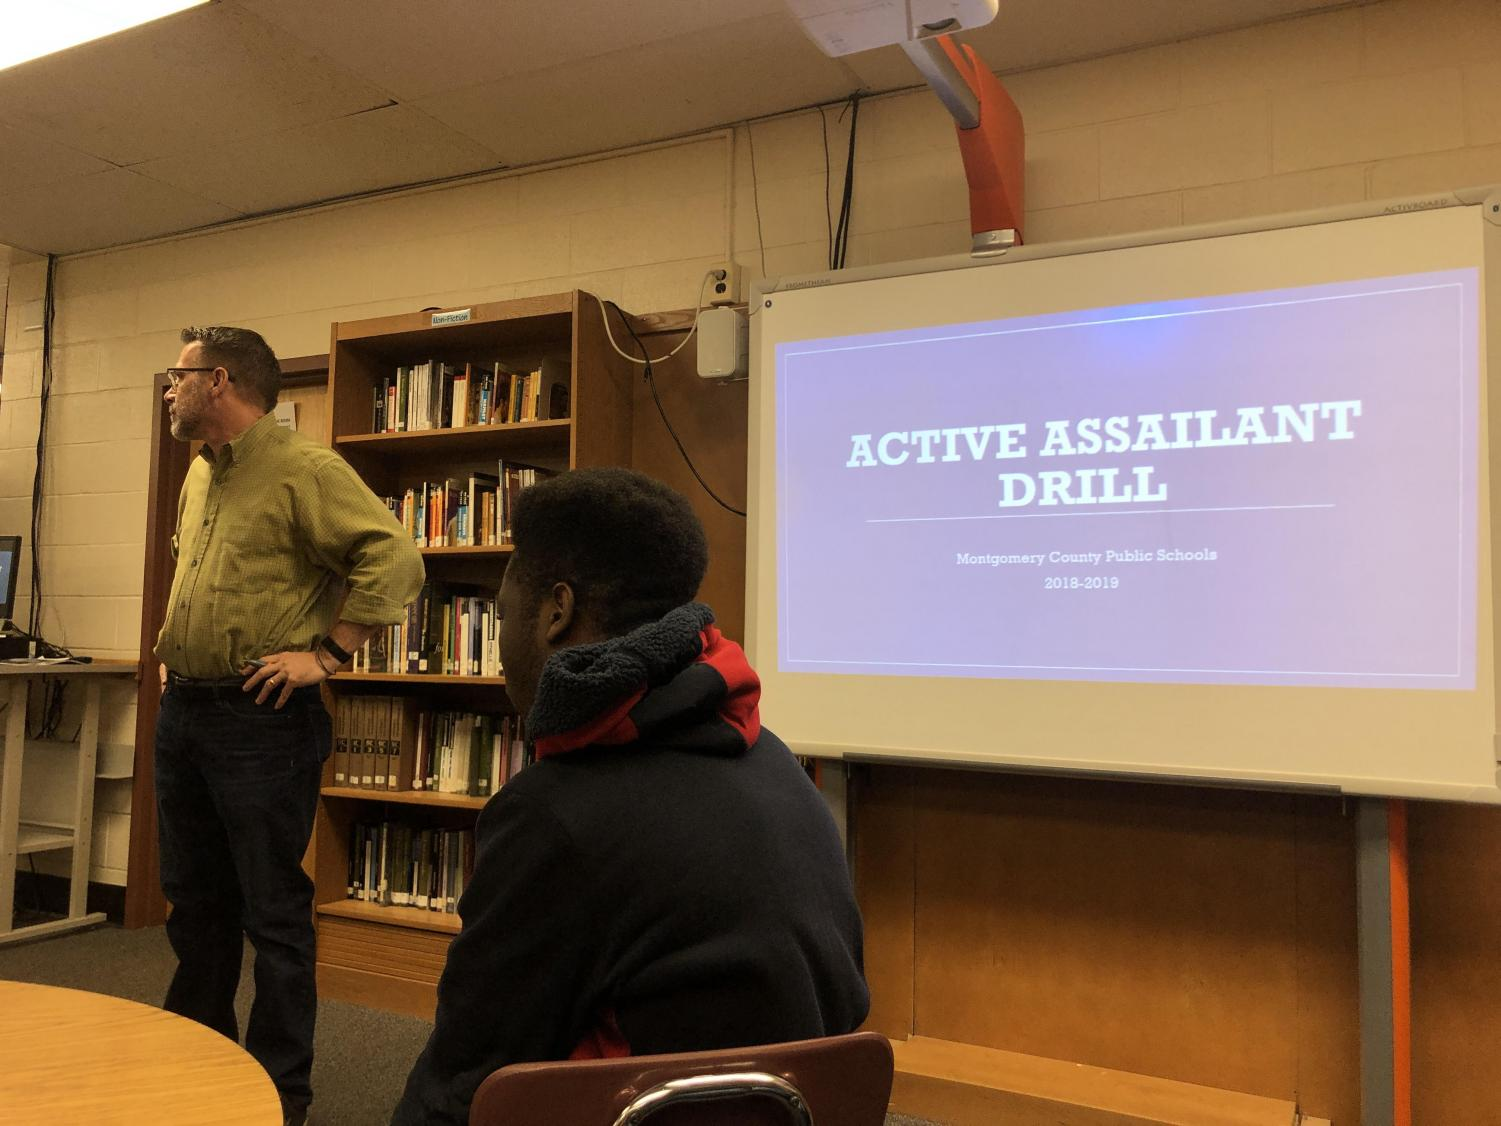 Mr. Weinshel facilitates the active assailant training with his advisory students.